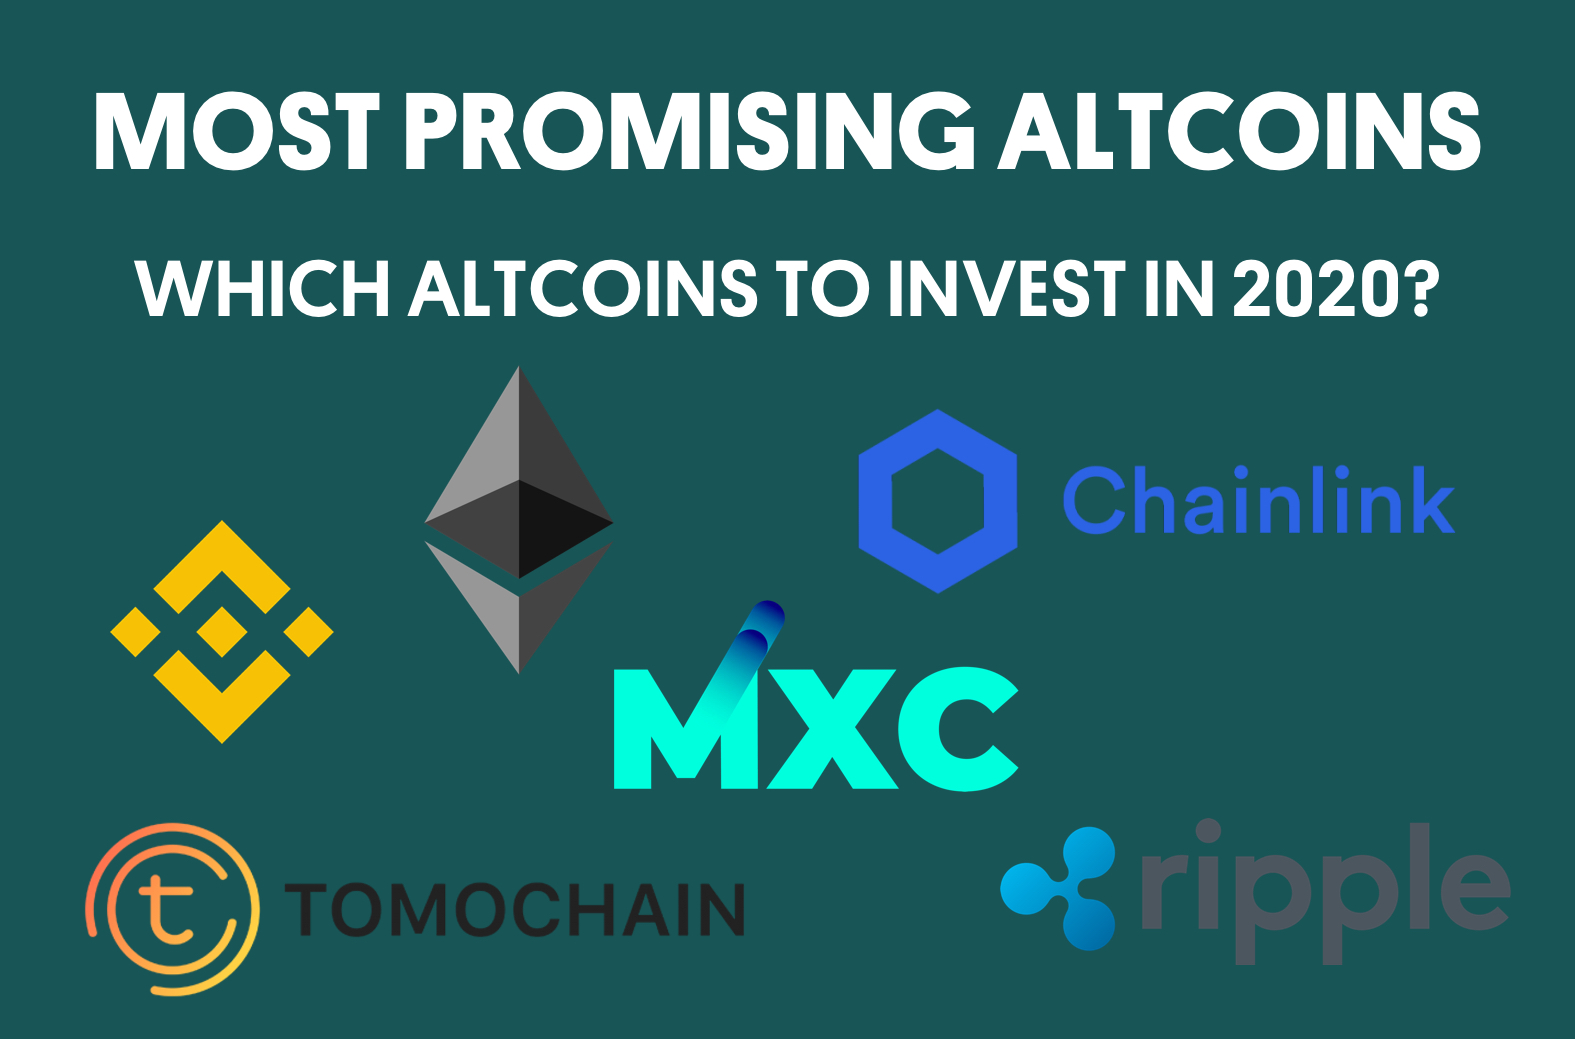 Most promising altcoins to invest in 2020?